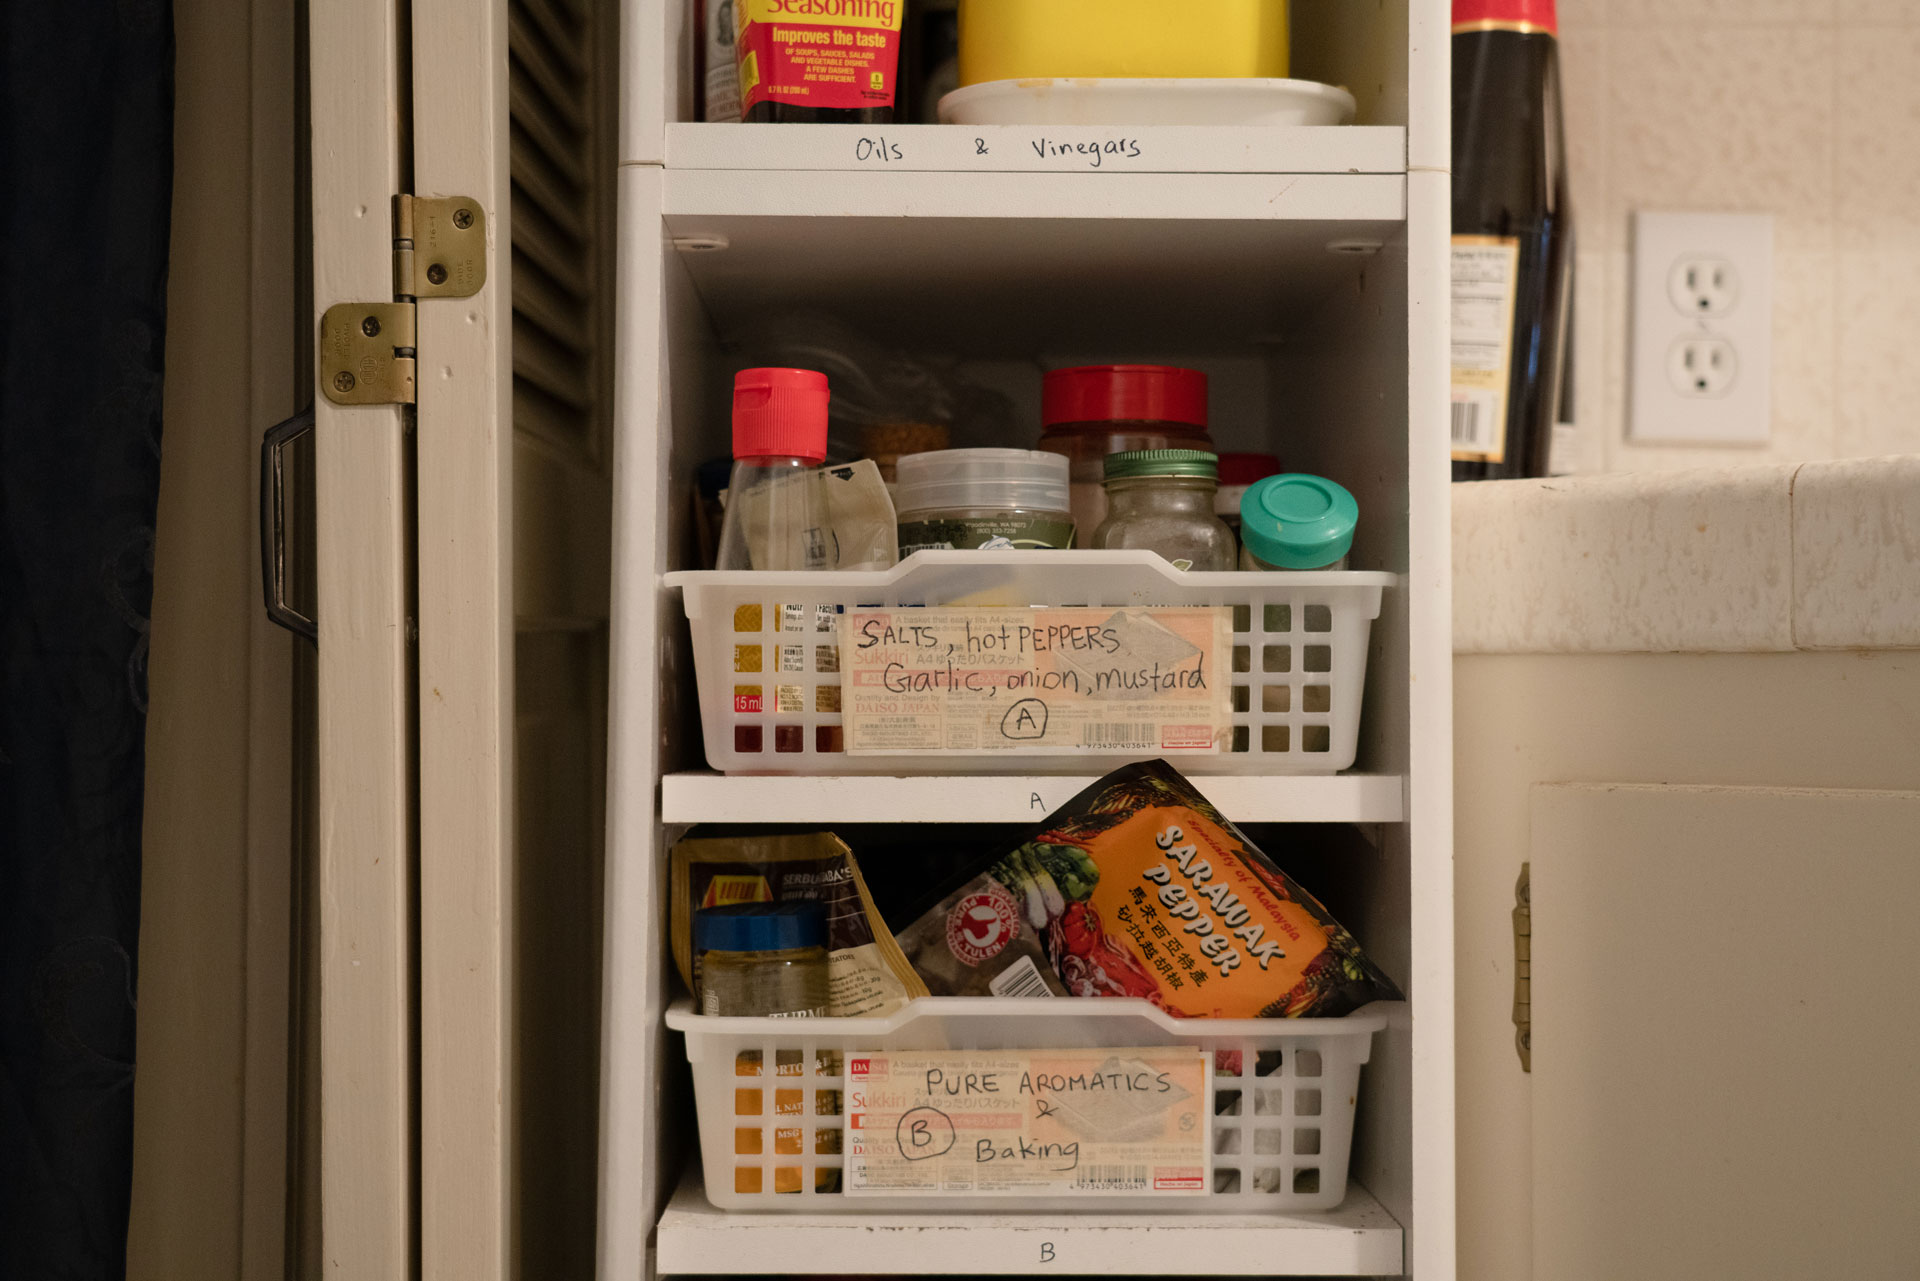 Labeled baskets of spices sit in a white shelf in the kitchen.